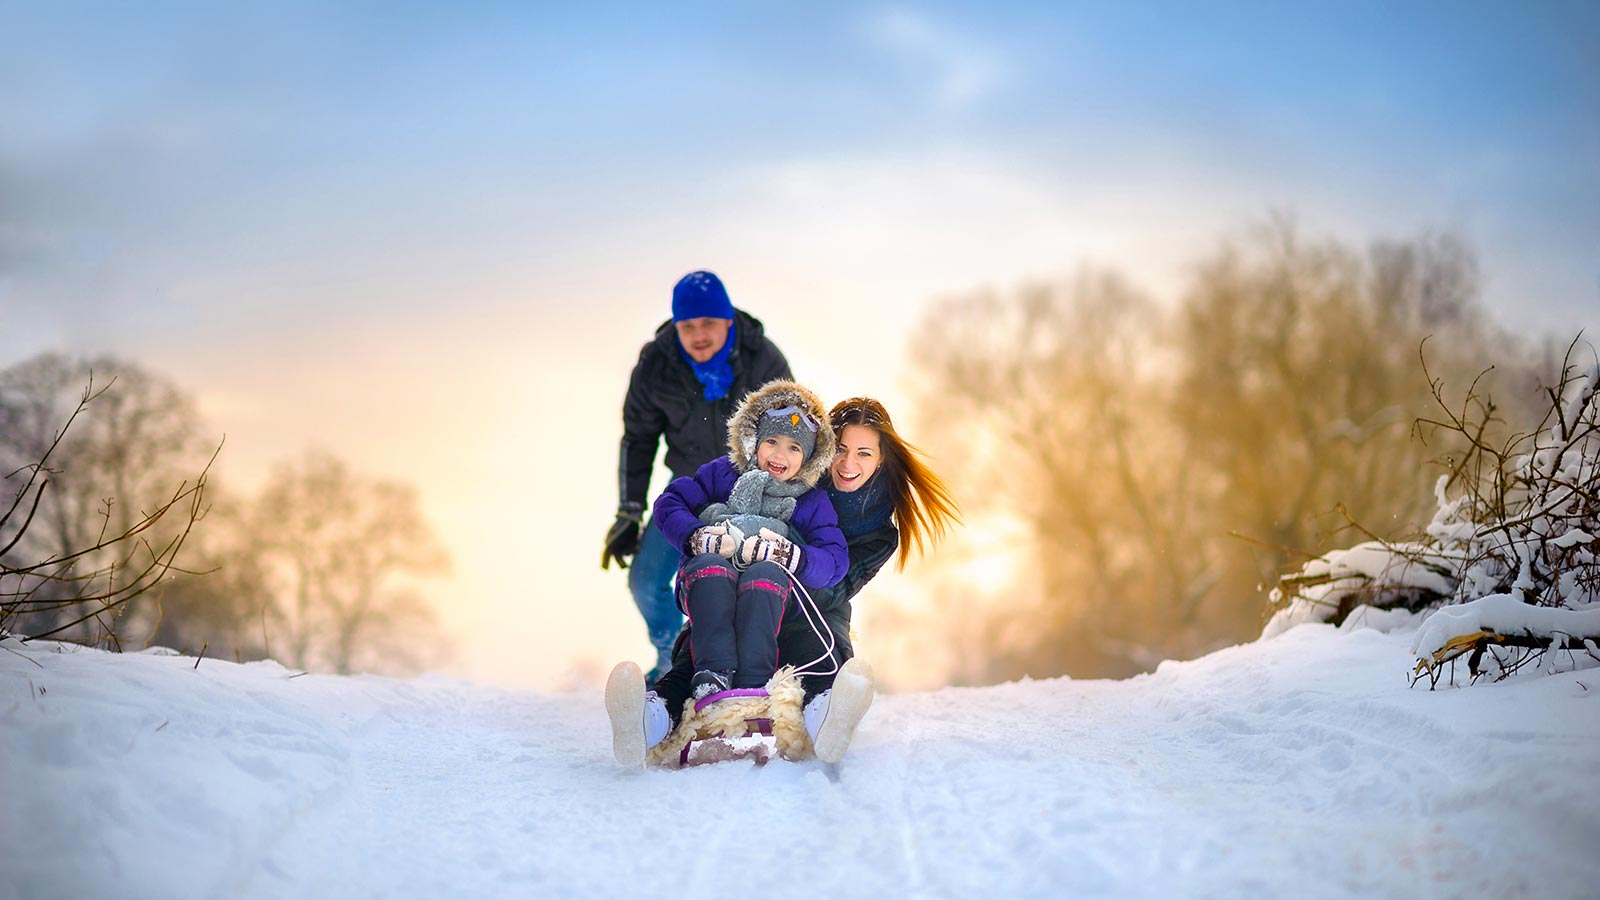 a happy family on a sledge